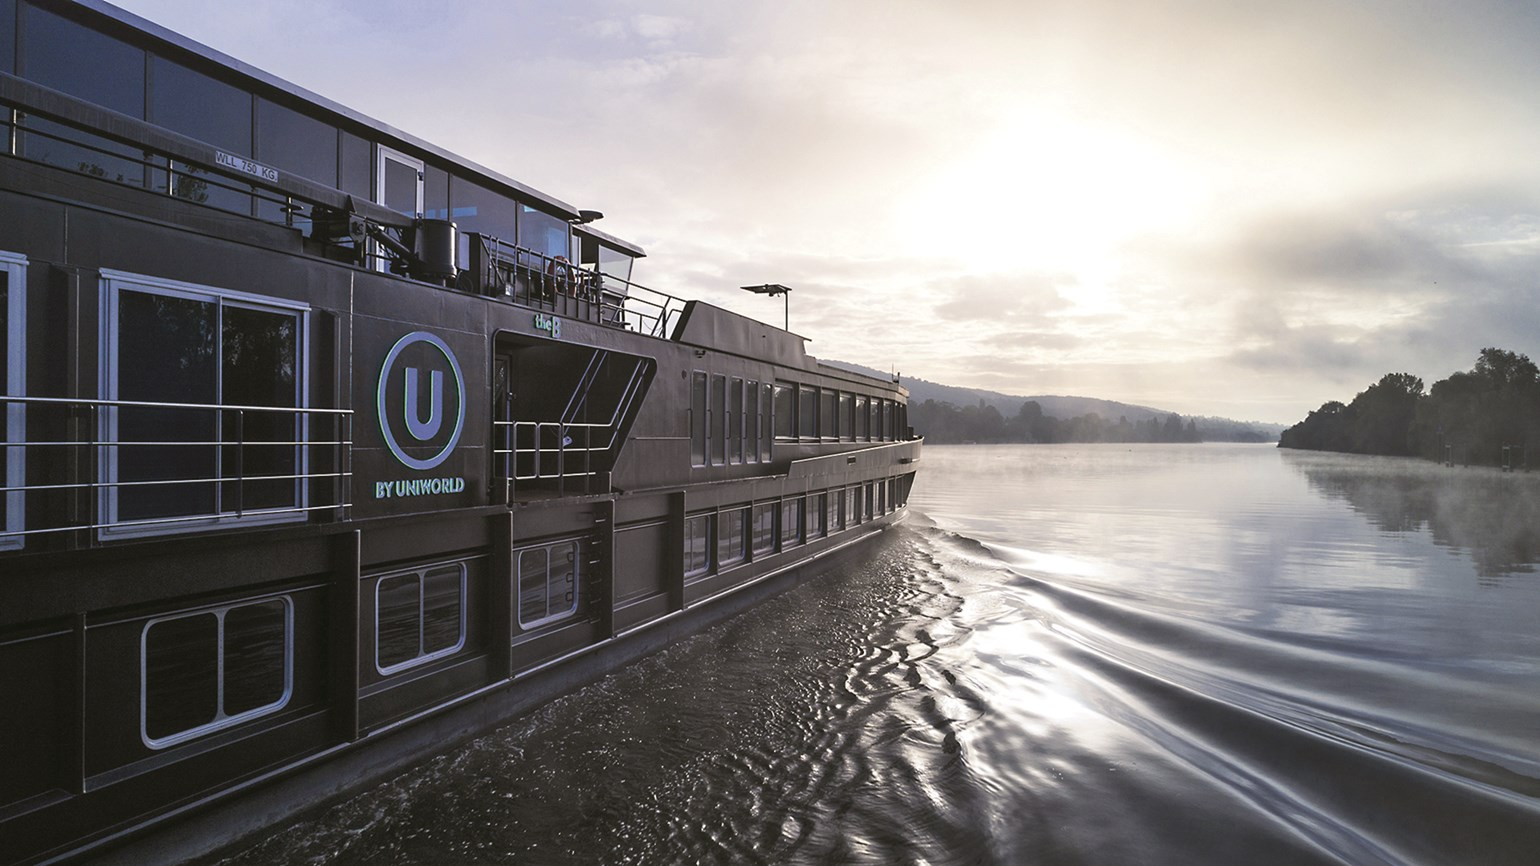 Millennial river cruise line to be featured on 'The Bachelor'